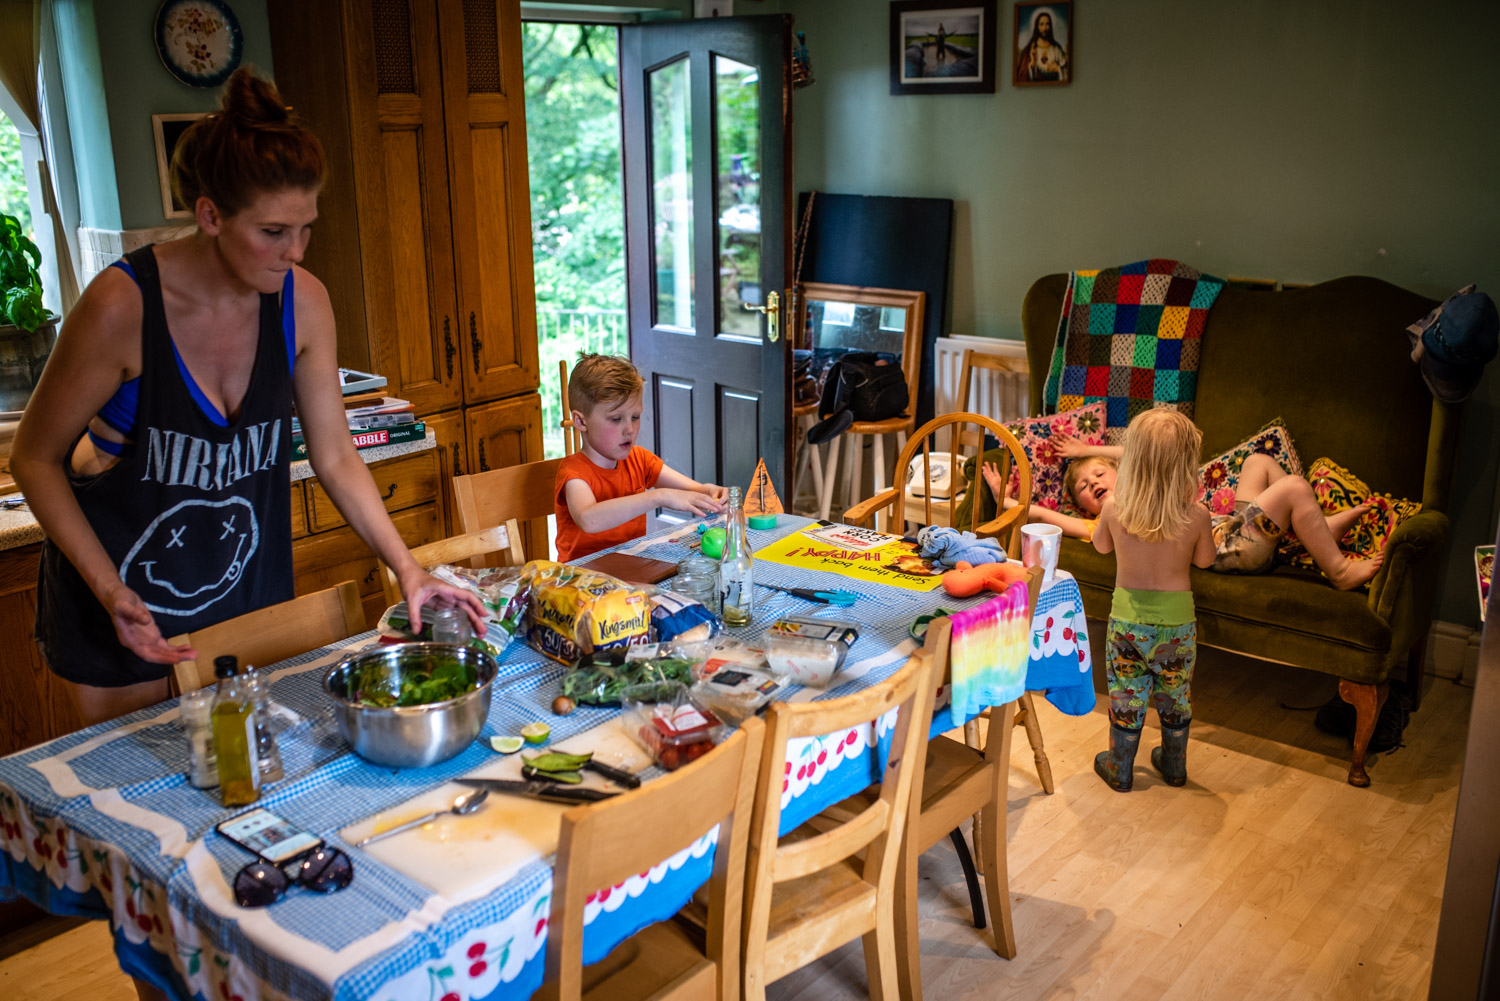 A mother and her three sons are all in their colourful kitchenn playing and preparing food during this unposed family portrait photography session.